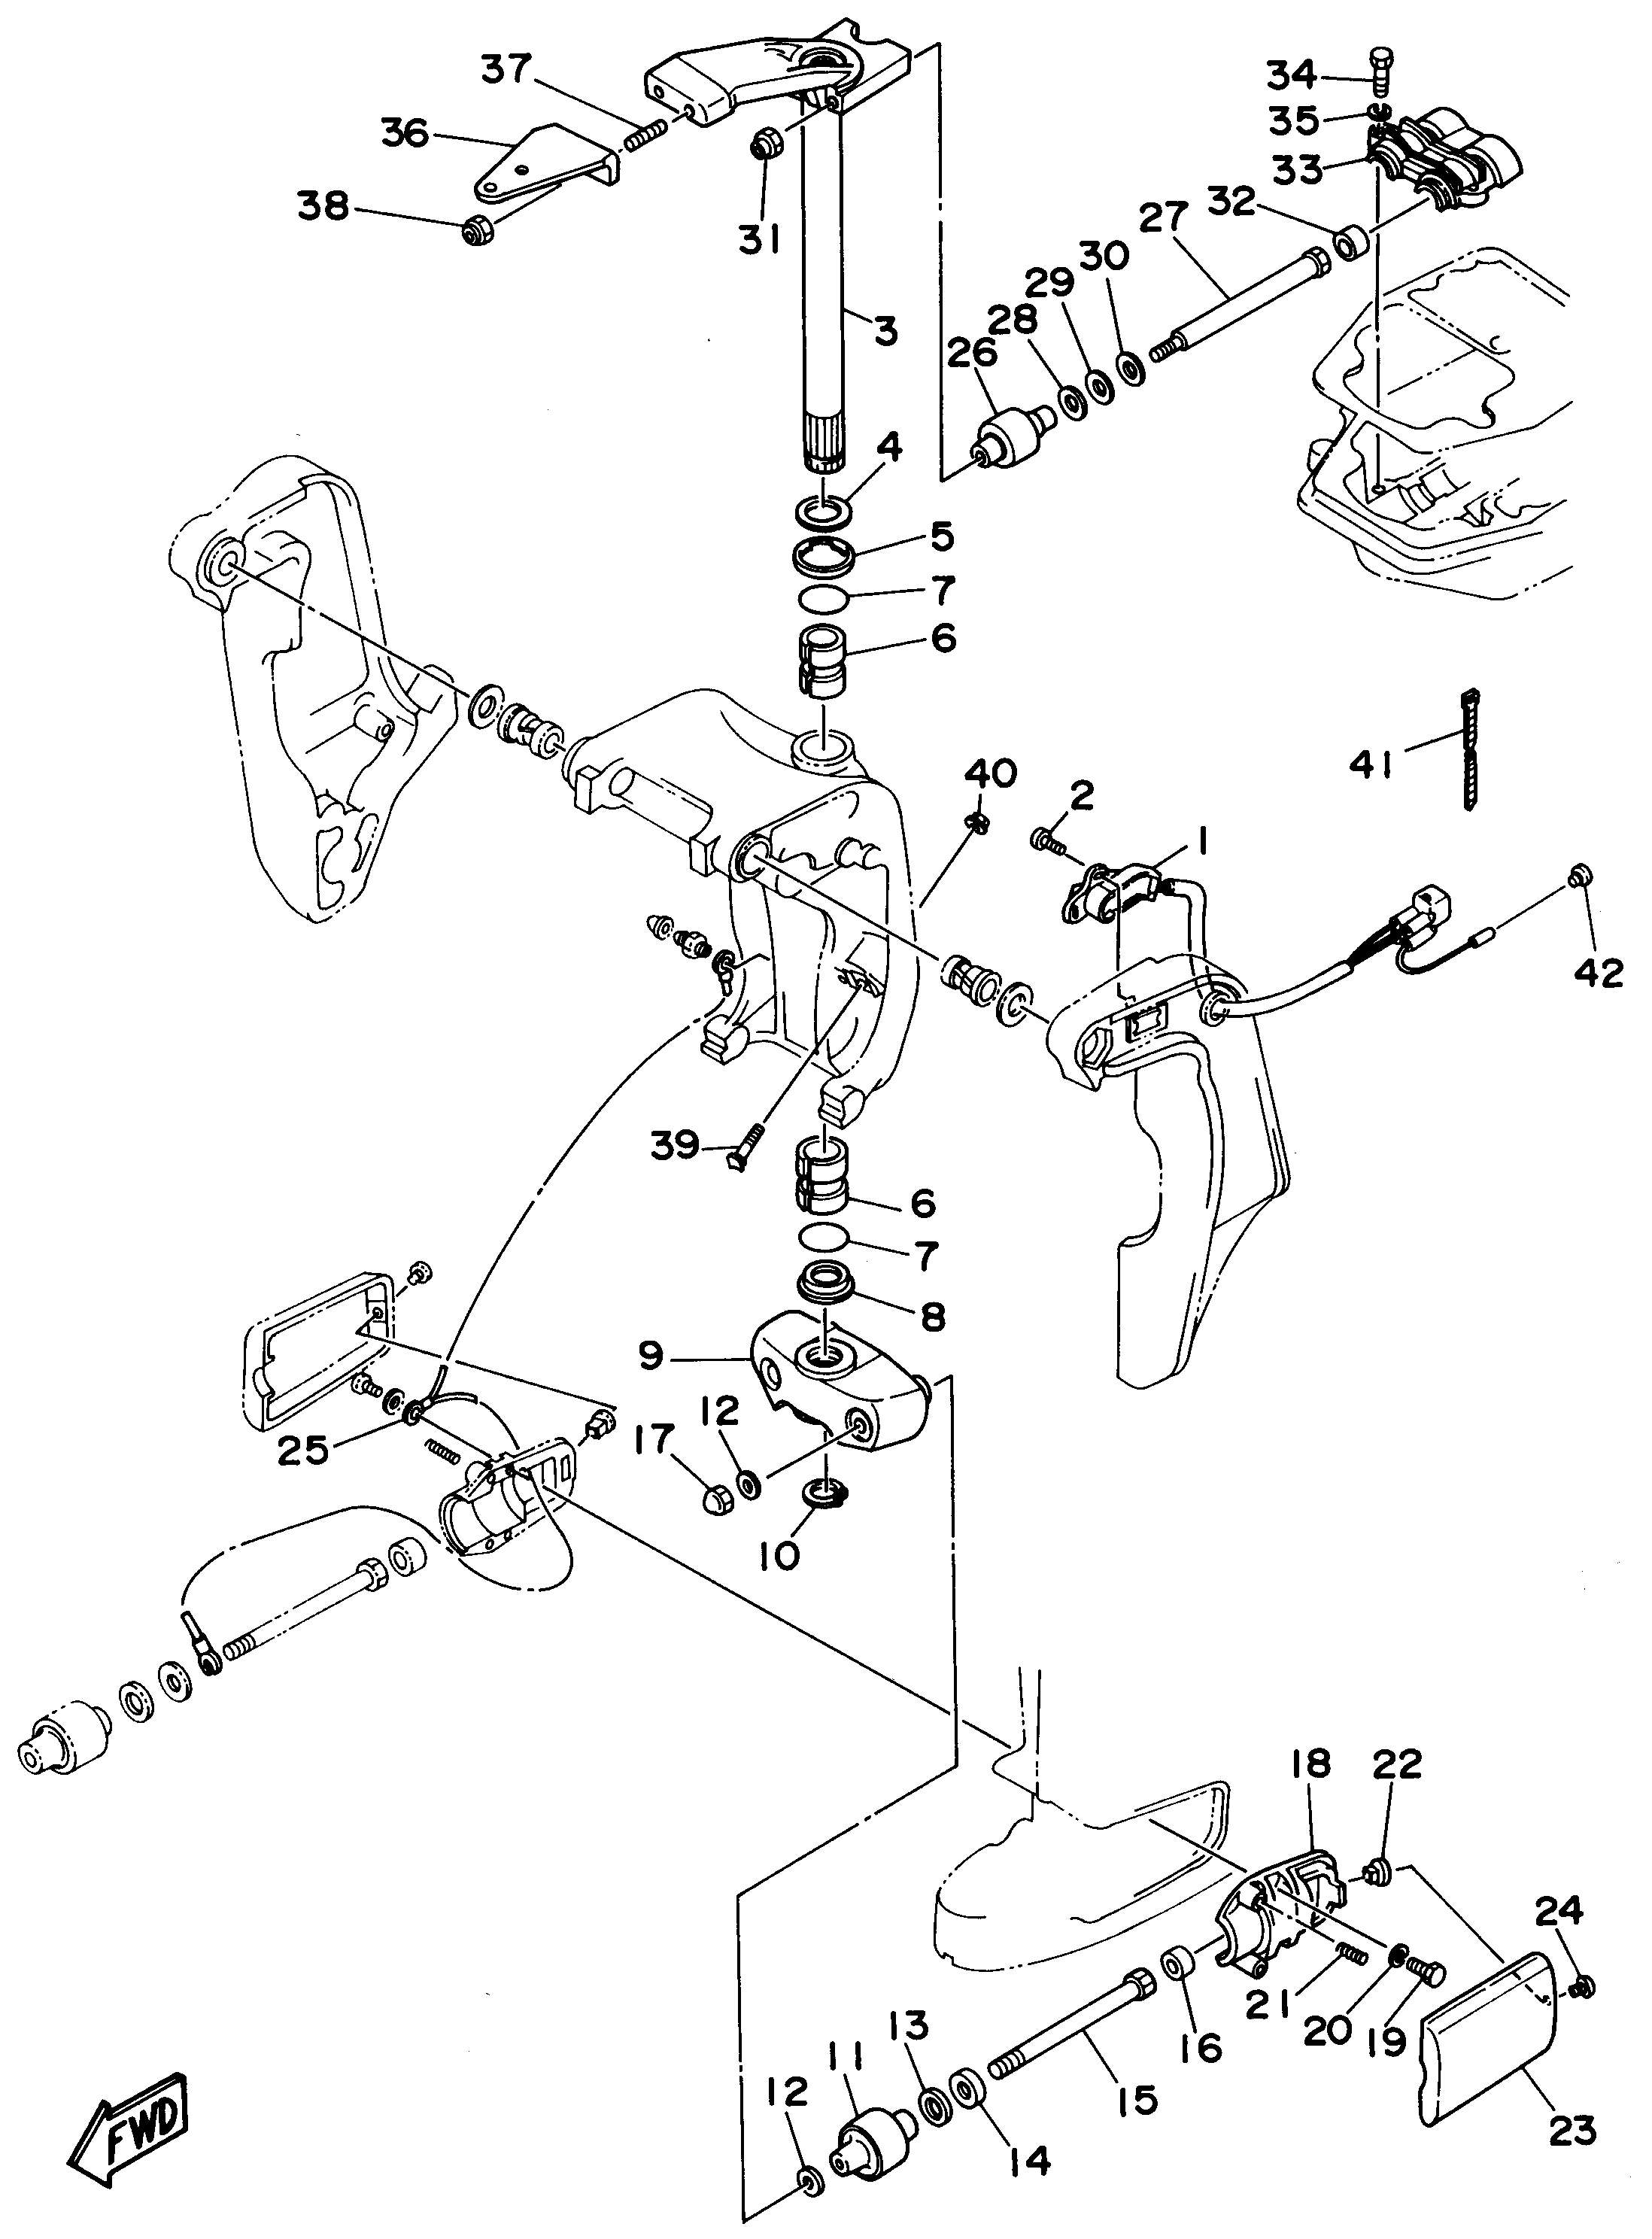 Suzuki Outboard Motor Parts Diagram Impremedia Net